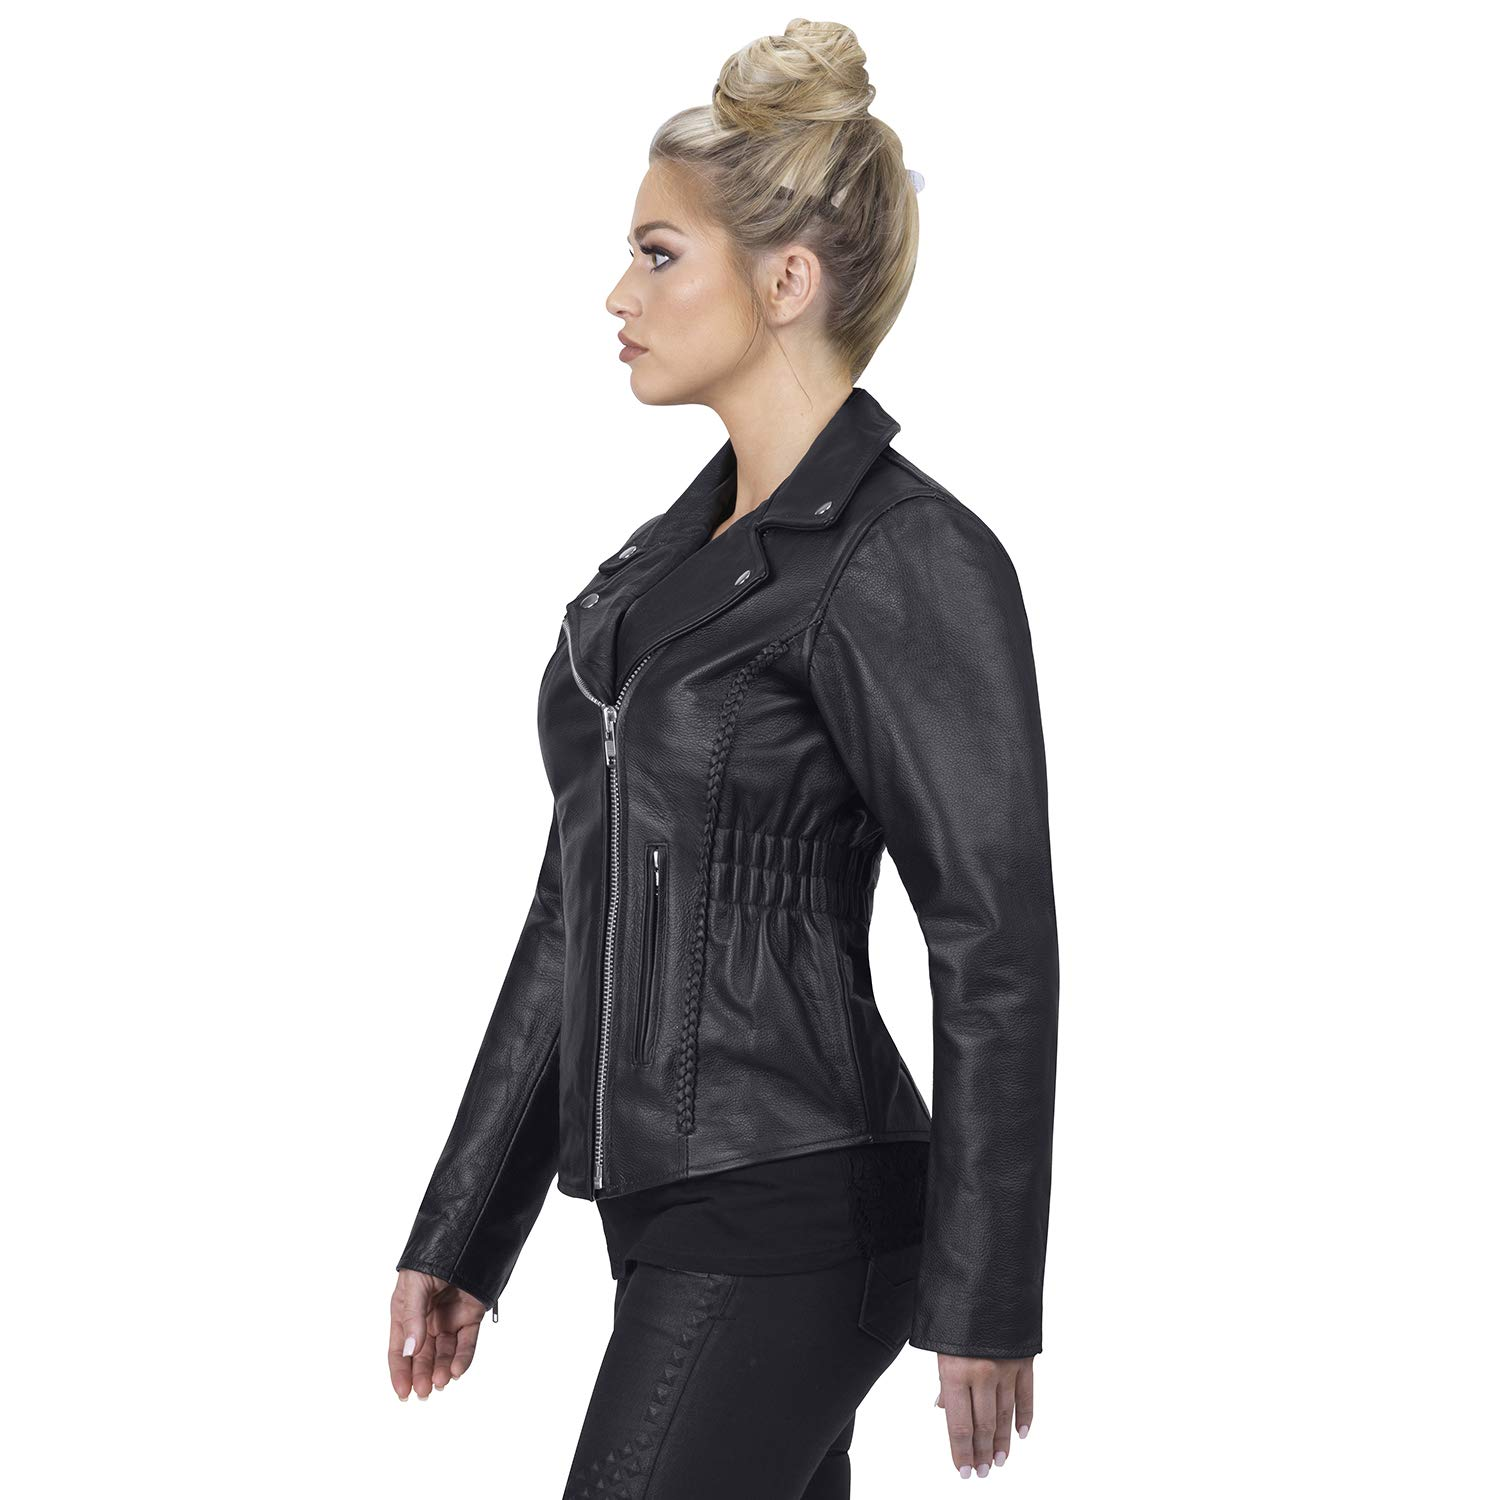 dffdac8ca Viking Cycle Cruise Premium Grade Cowhide Leather Motorcycle Jacket for  Women